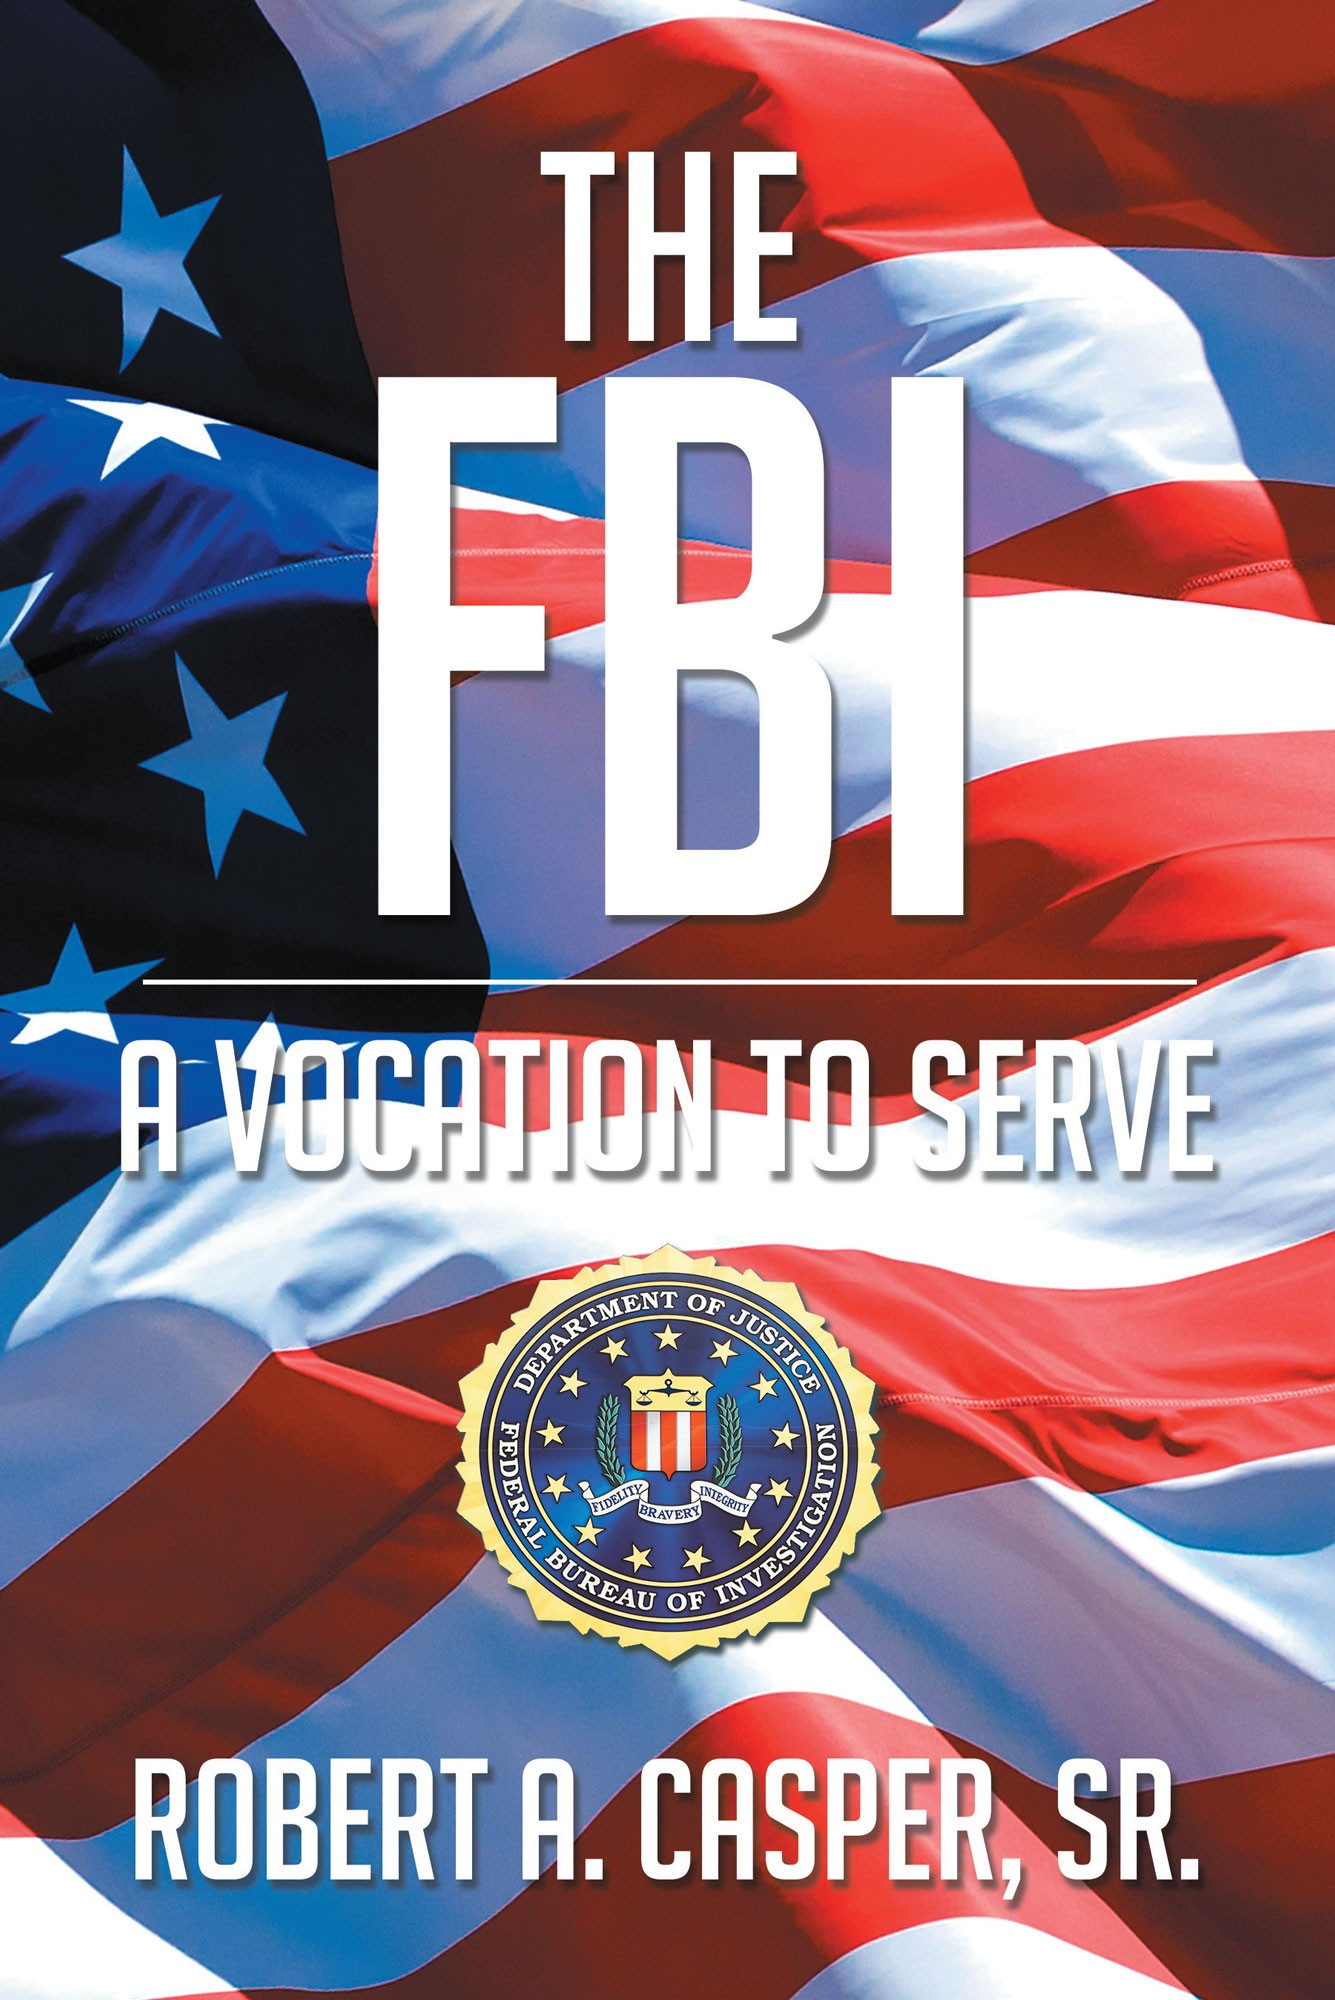 New Book The Fbi A Vocation To Serve By Robert A